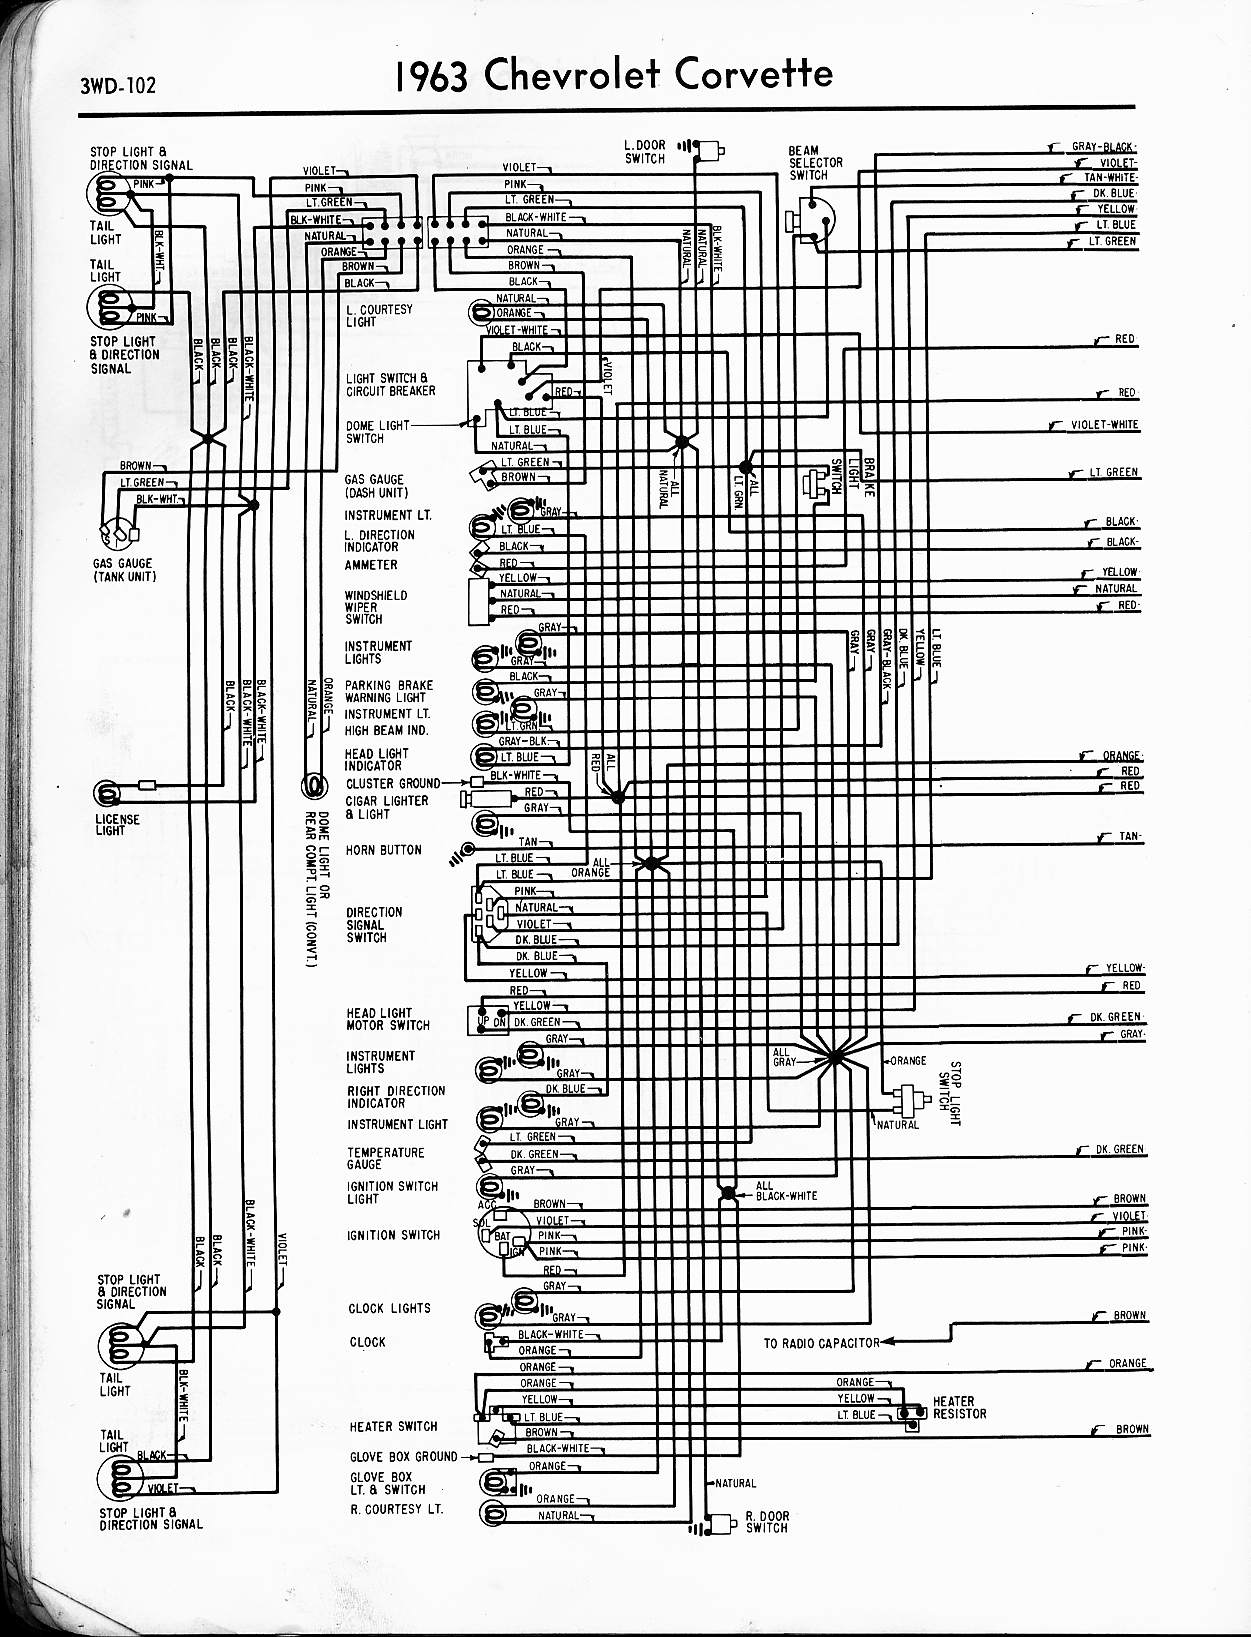 1964 Gmc Truck Electrical Wiring Diagrams Library Diagram 1978 Corvette Schematics U2022 Rh Schoosretailstores Com 65